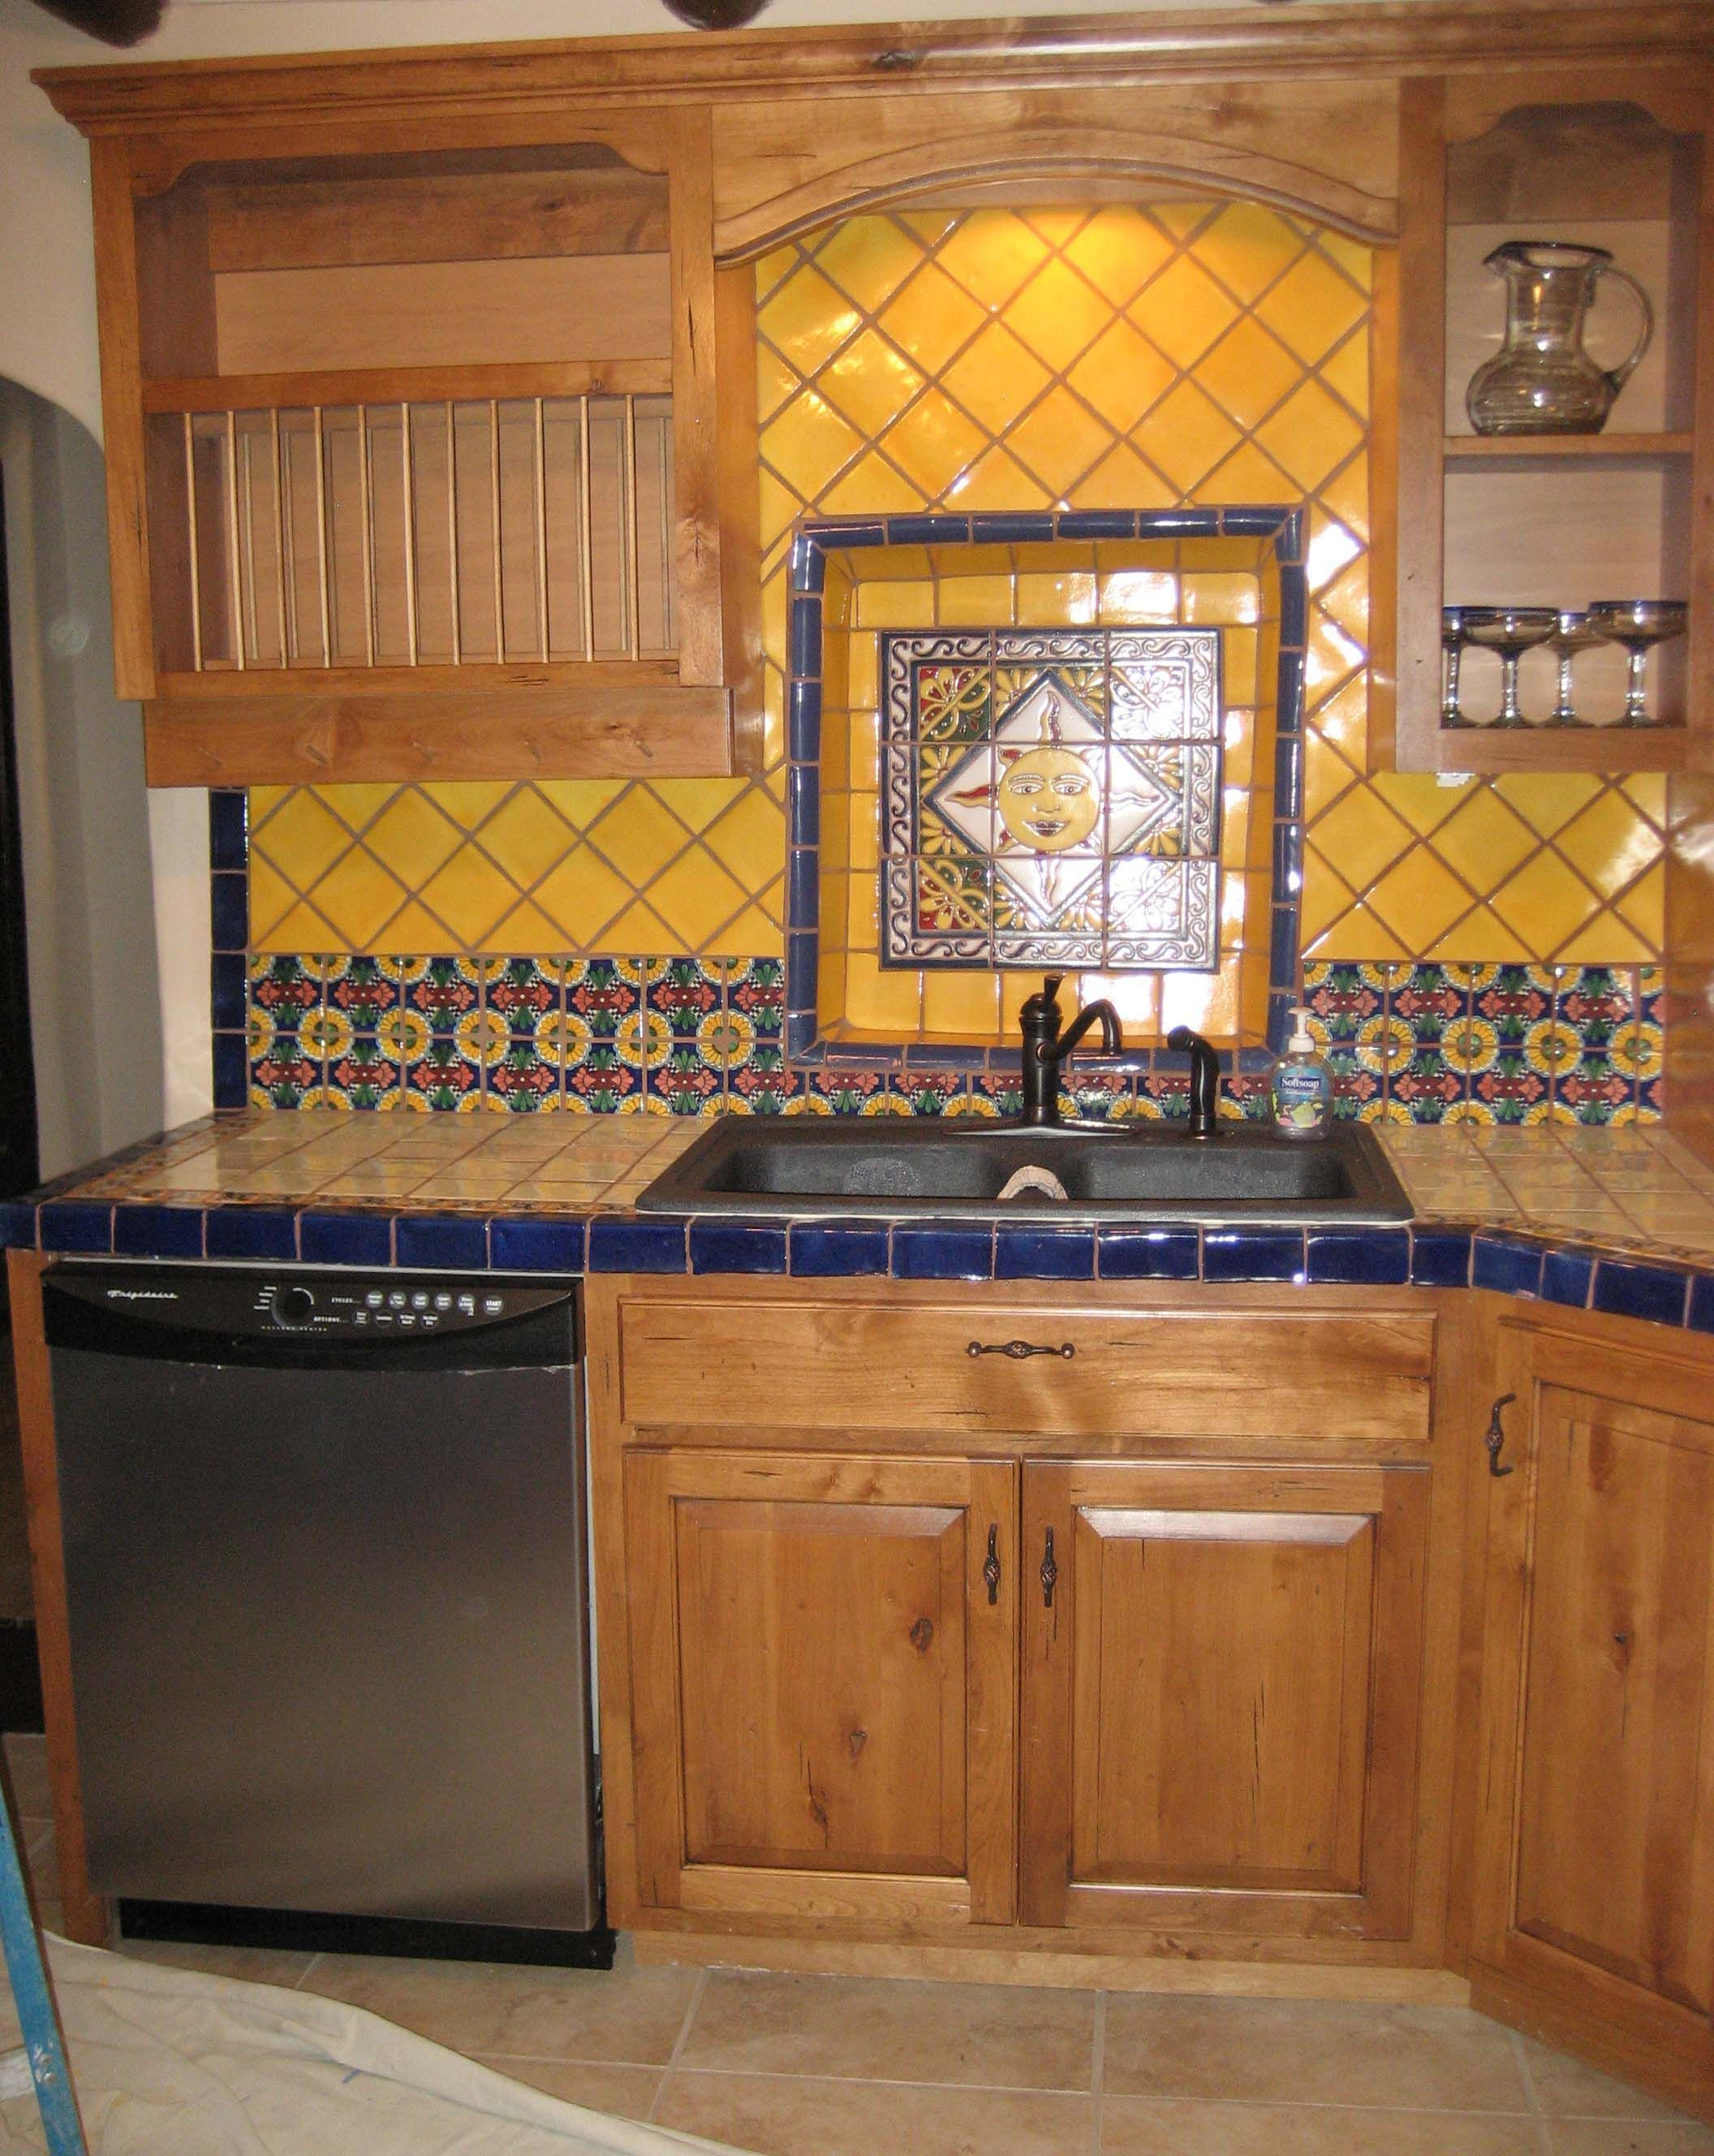 Kitchen Cabinets In Southwestern Style Built In New Mexico Mexican Style Kitchens Kitchen Cabinet Styles Kitchen Cabinets